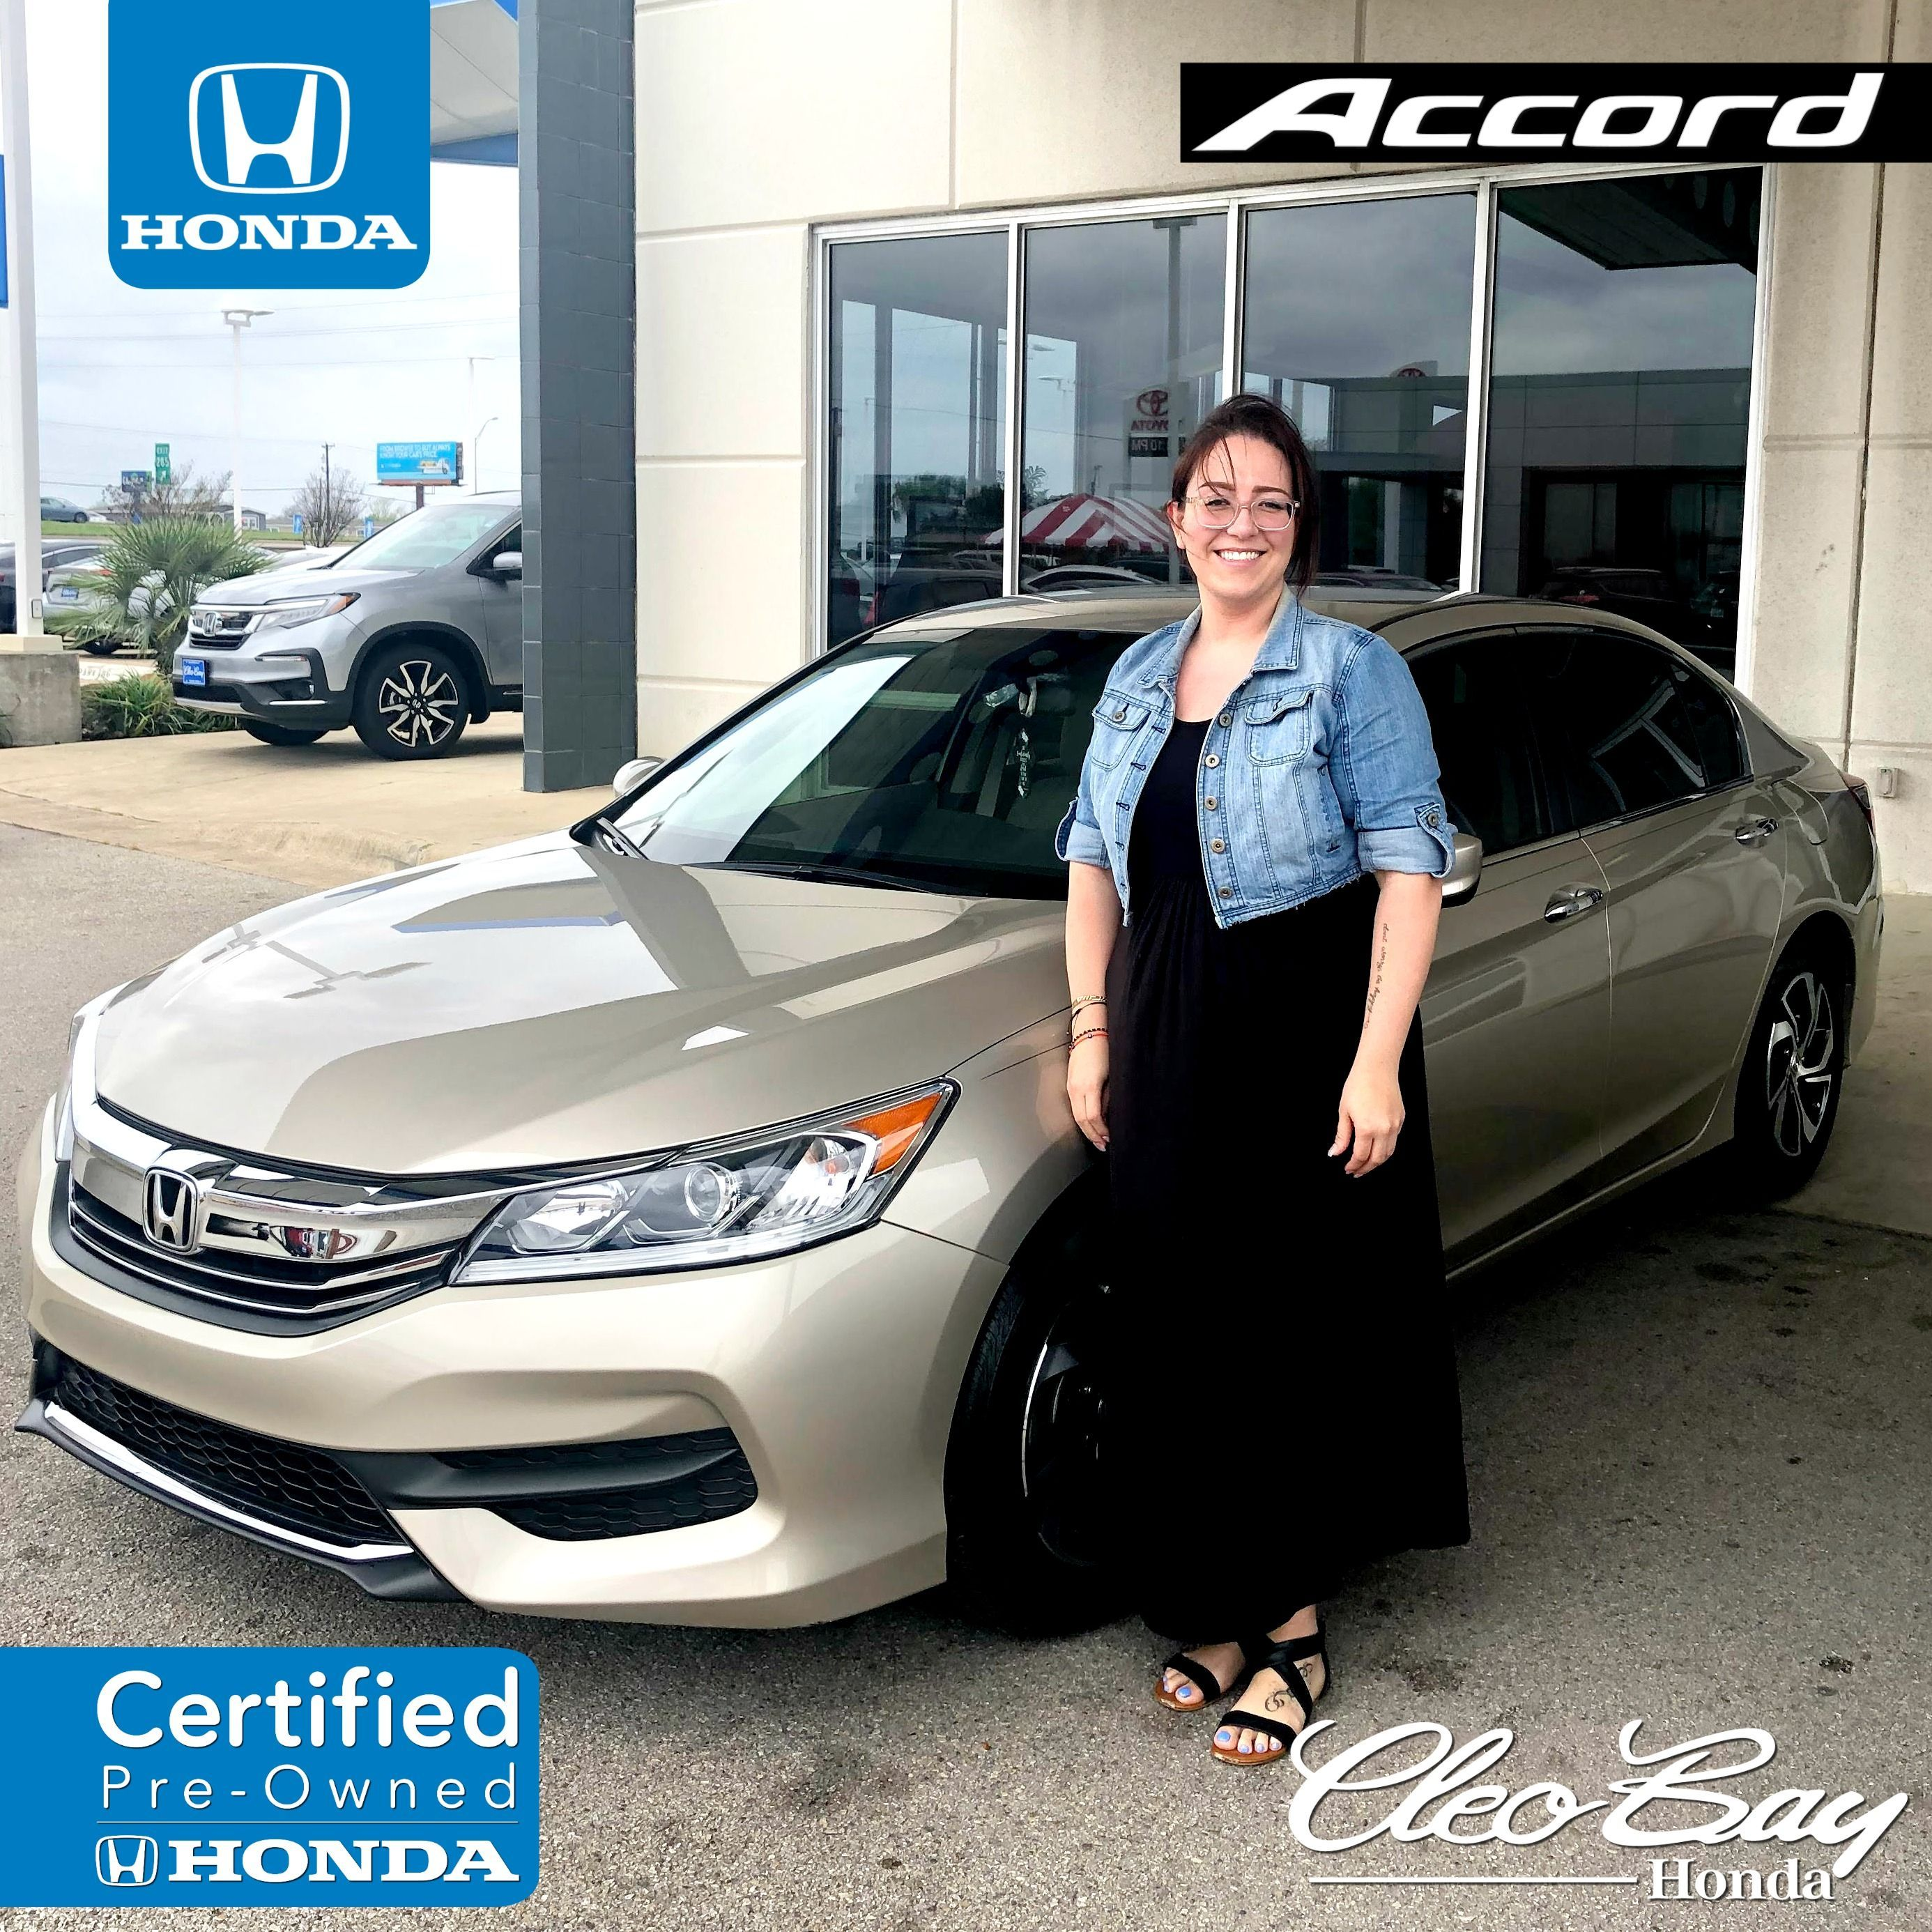 Congratulations Pamela on your recent purchase of a